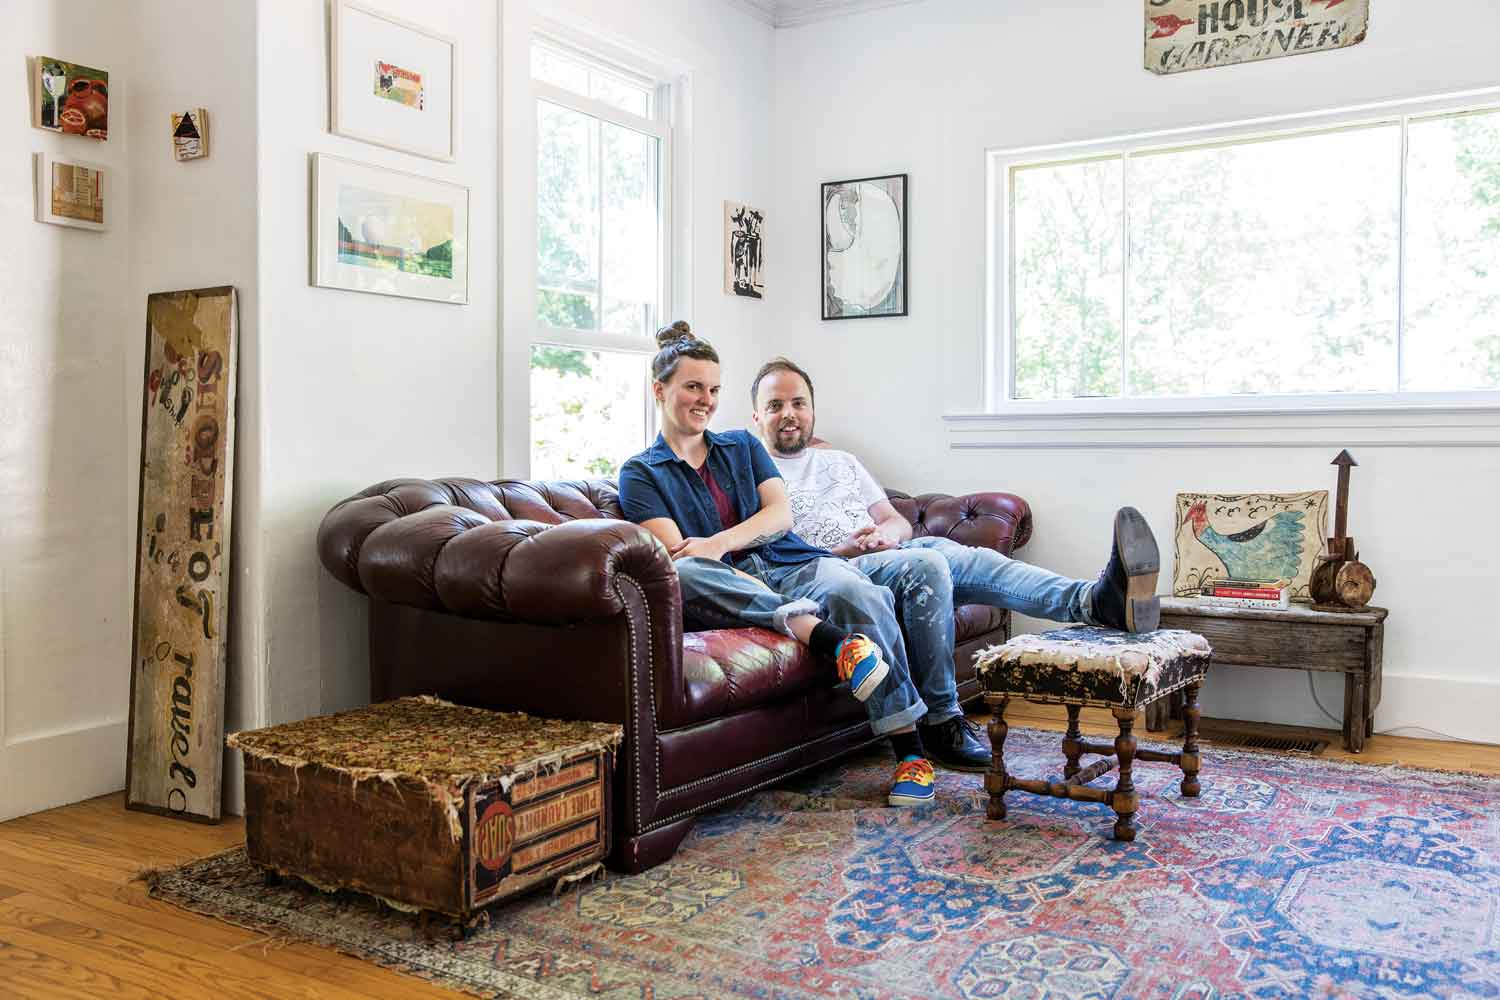 In the living room, the footrest is fraying, the rug is faded, and the end table is a soap box a previous owner outfitted with casters and a hinged, carpeted lid.